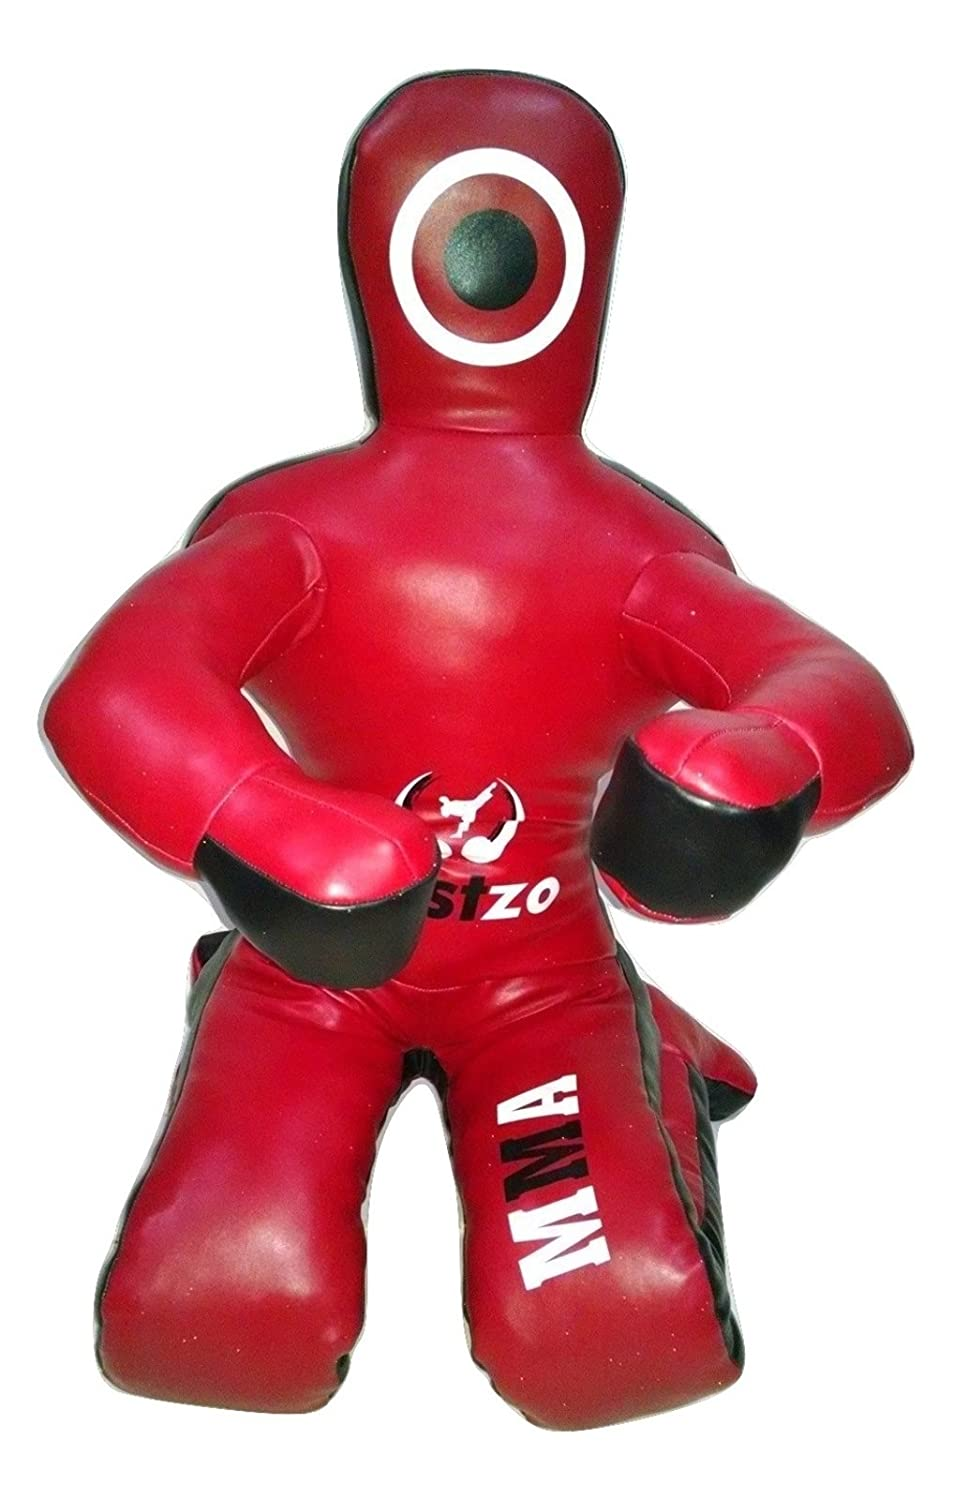 【良好品】 bestzo MMA unfilled-70 inches B077C8BK9T Jiu Jitsu柔道Grapplingダミー合成レザーレッドSitting Position – unfilled-70 inches B077C8BK9T, ブリティッシュライフ:580d7e6e --- a0267596.xsph.ru